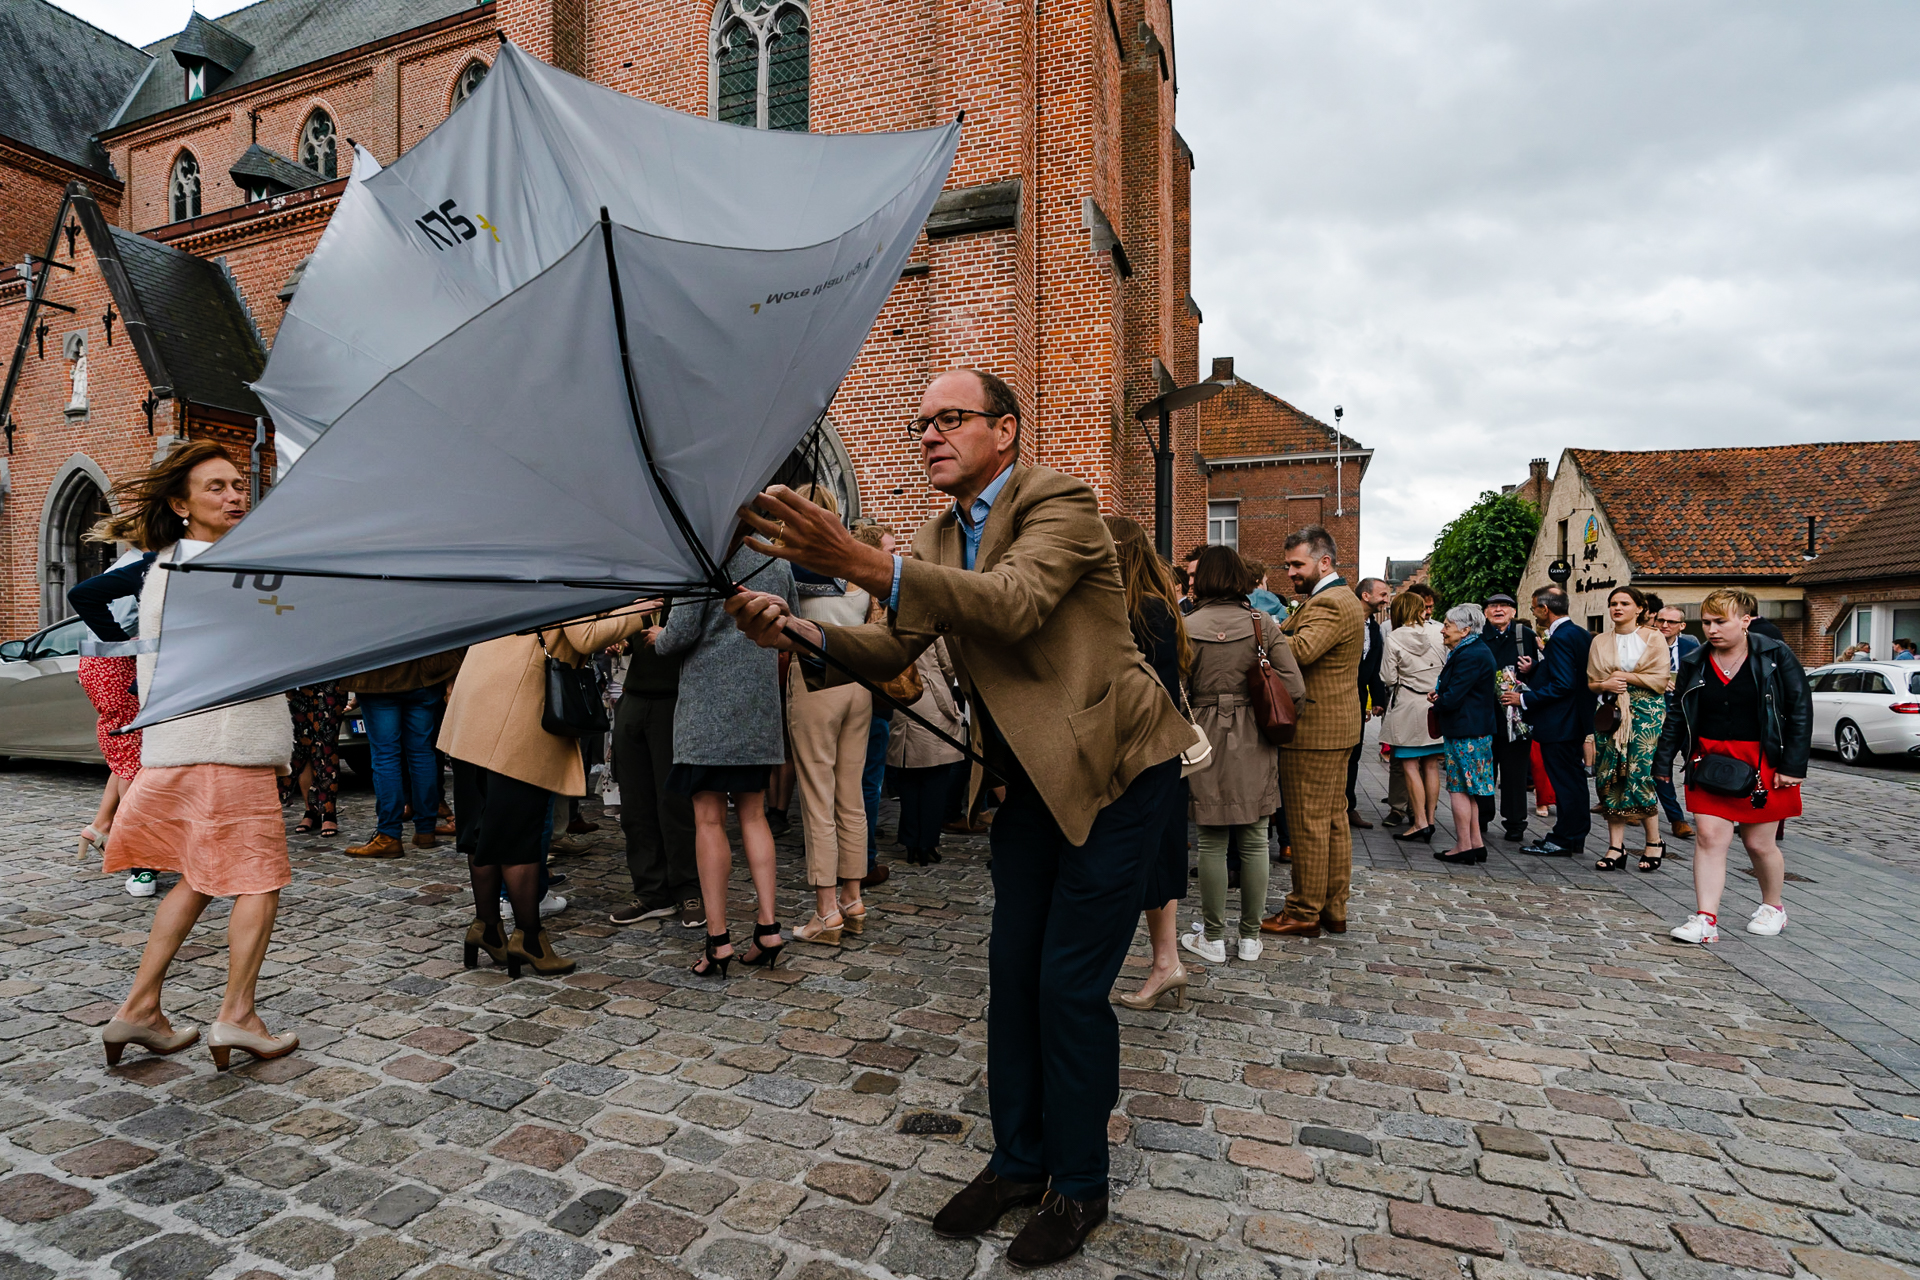 Wedding Day Rain Photography | Guests battle the wind and water with umbrellas at the reception.